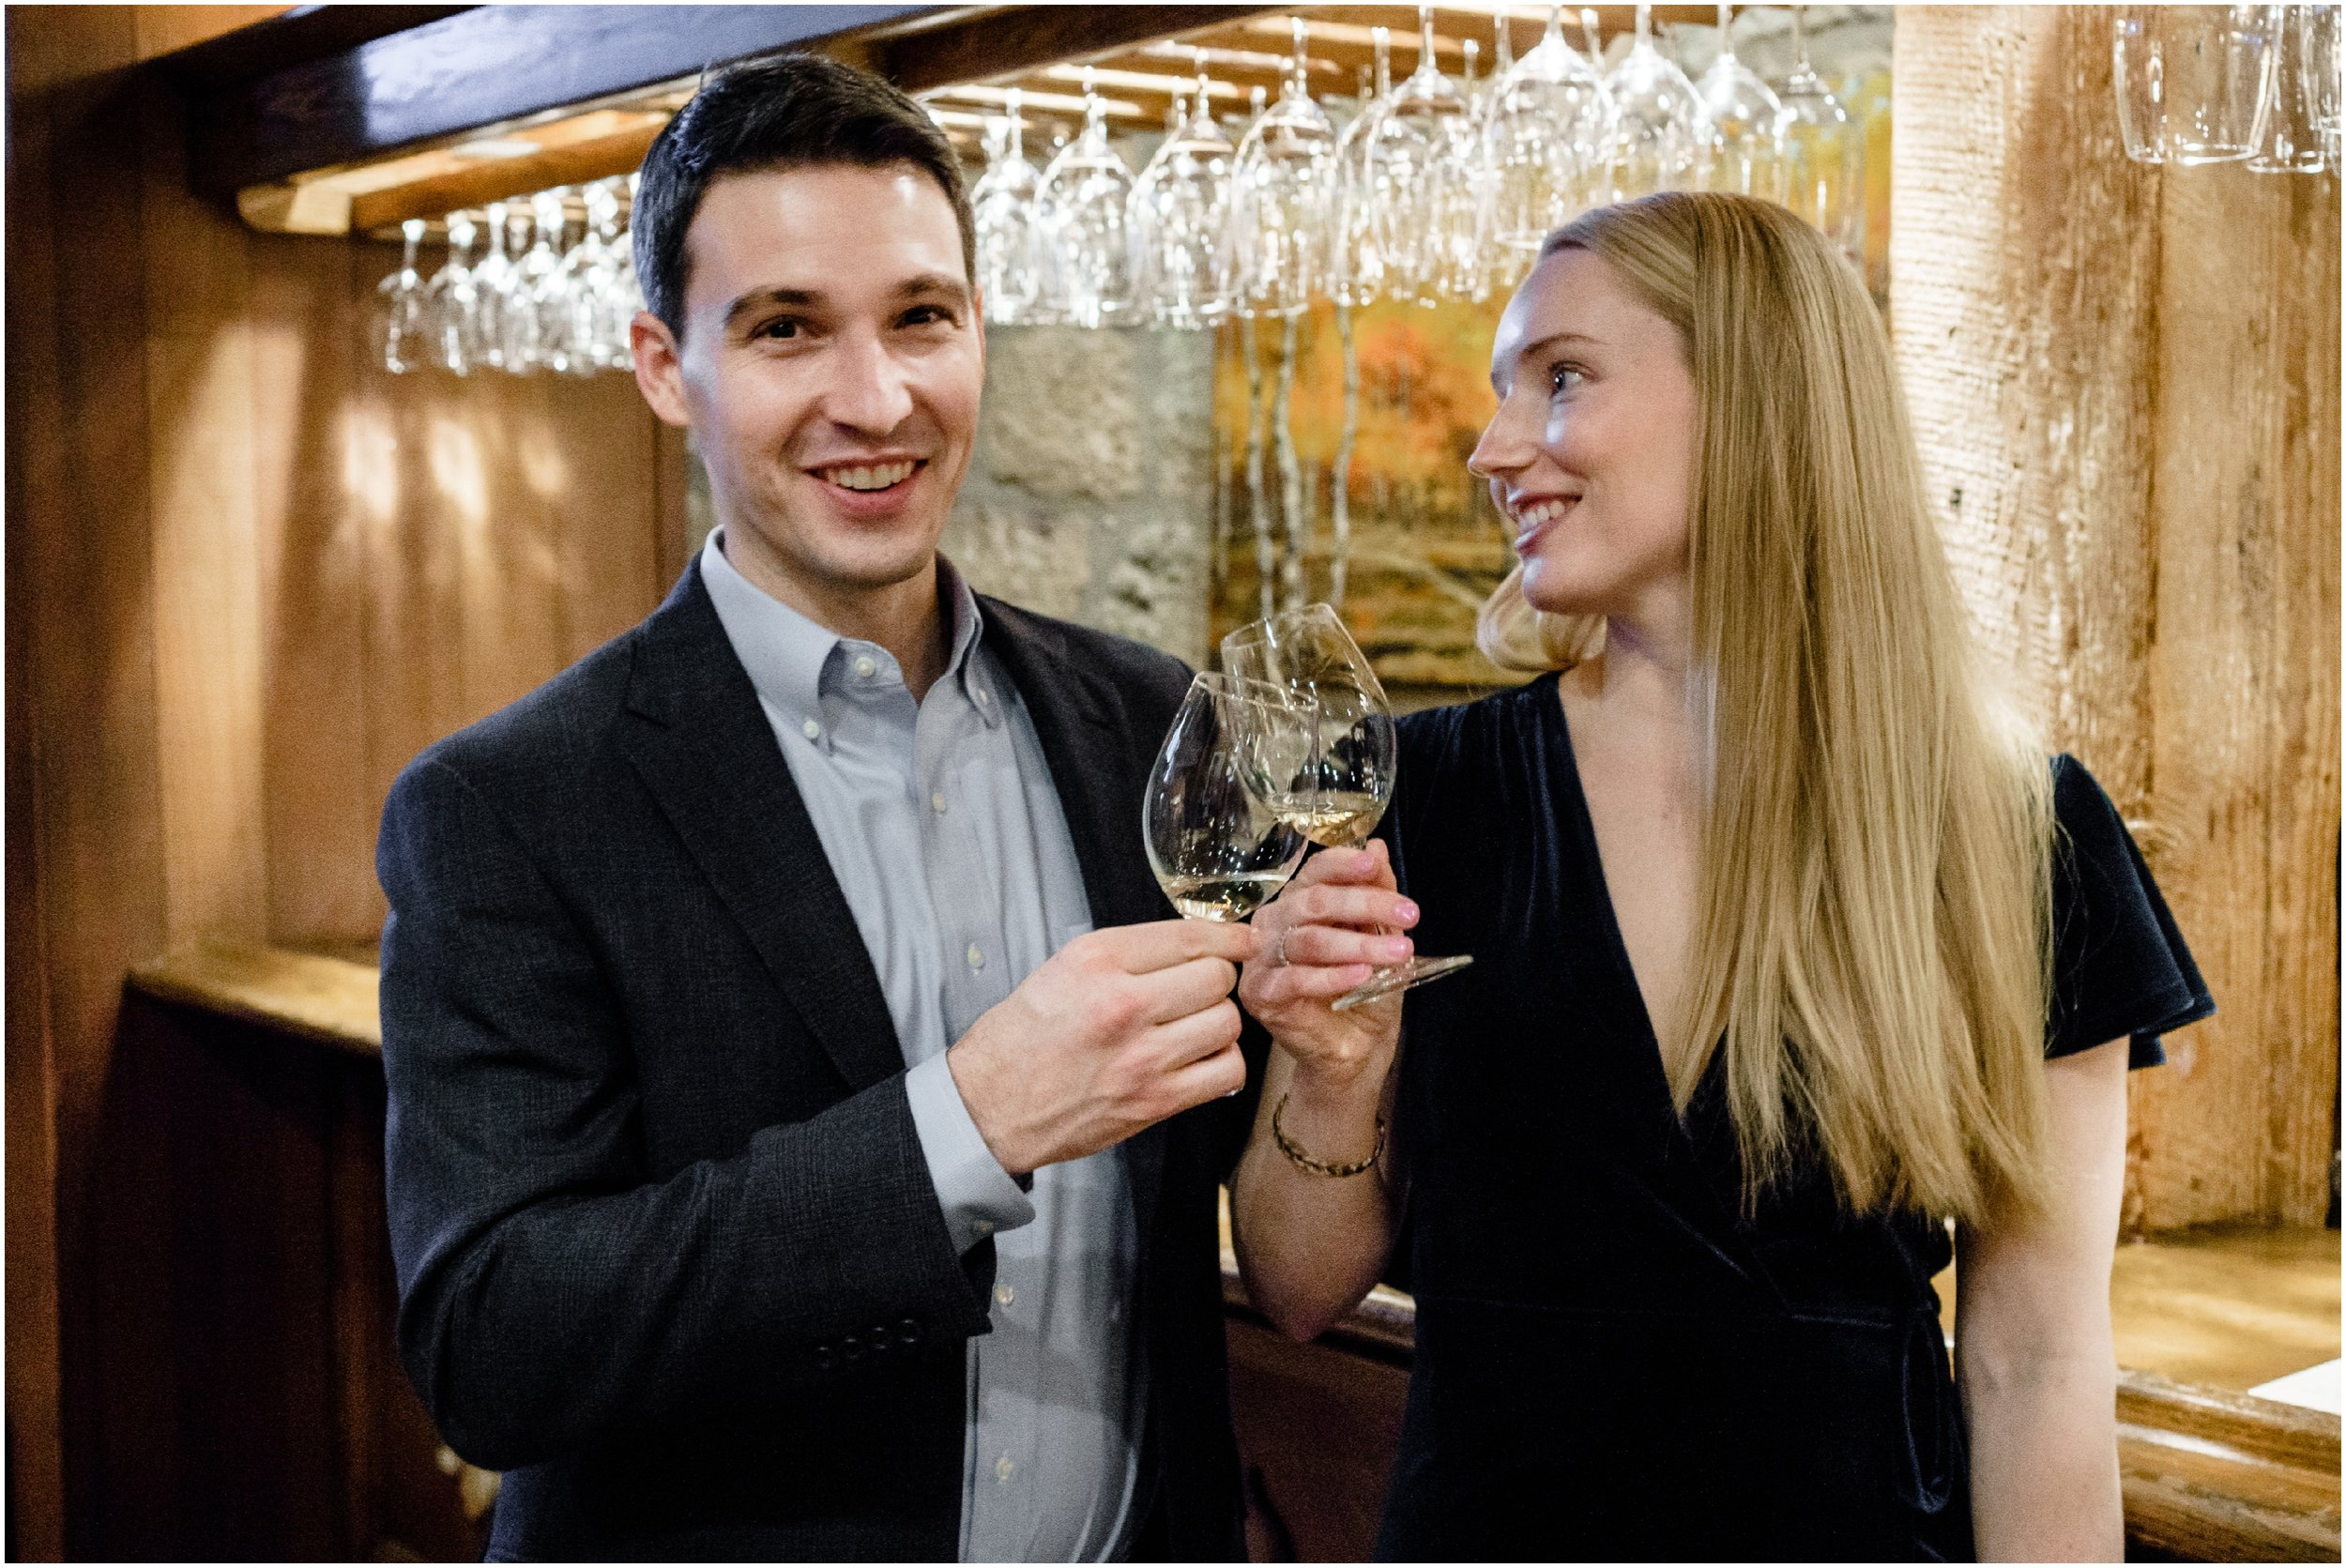 couple tasting wine at Chateau Montelena in Napa Valley